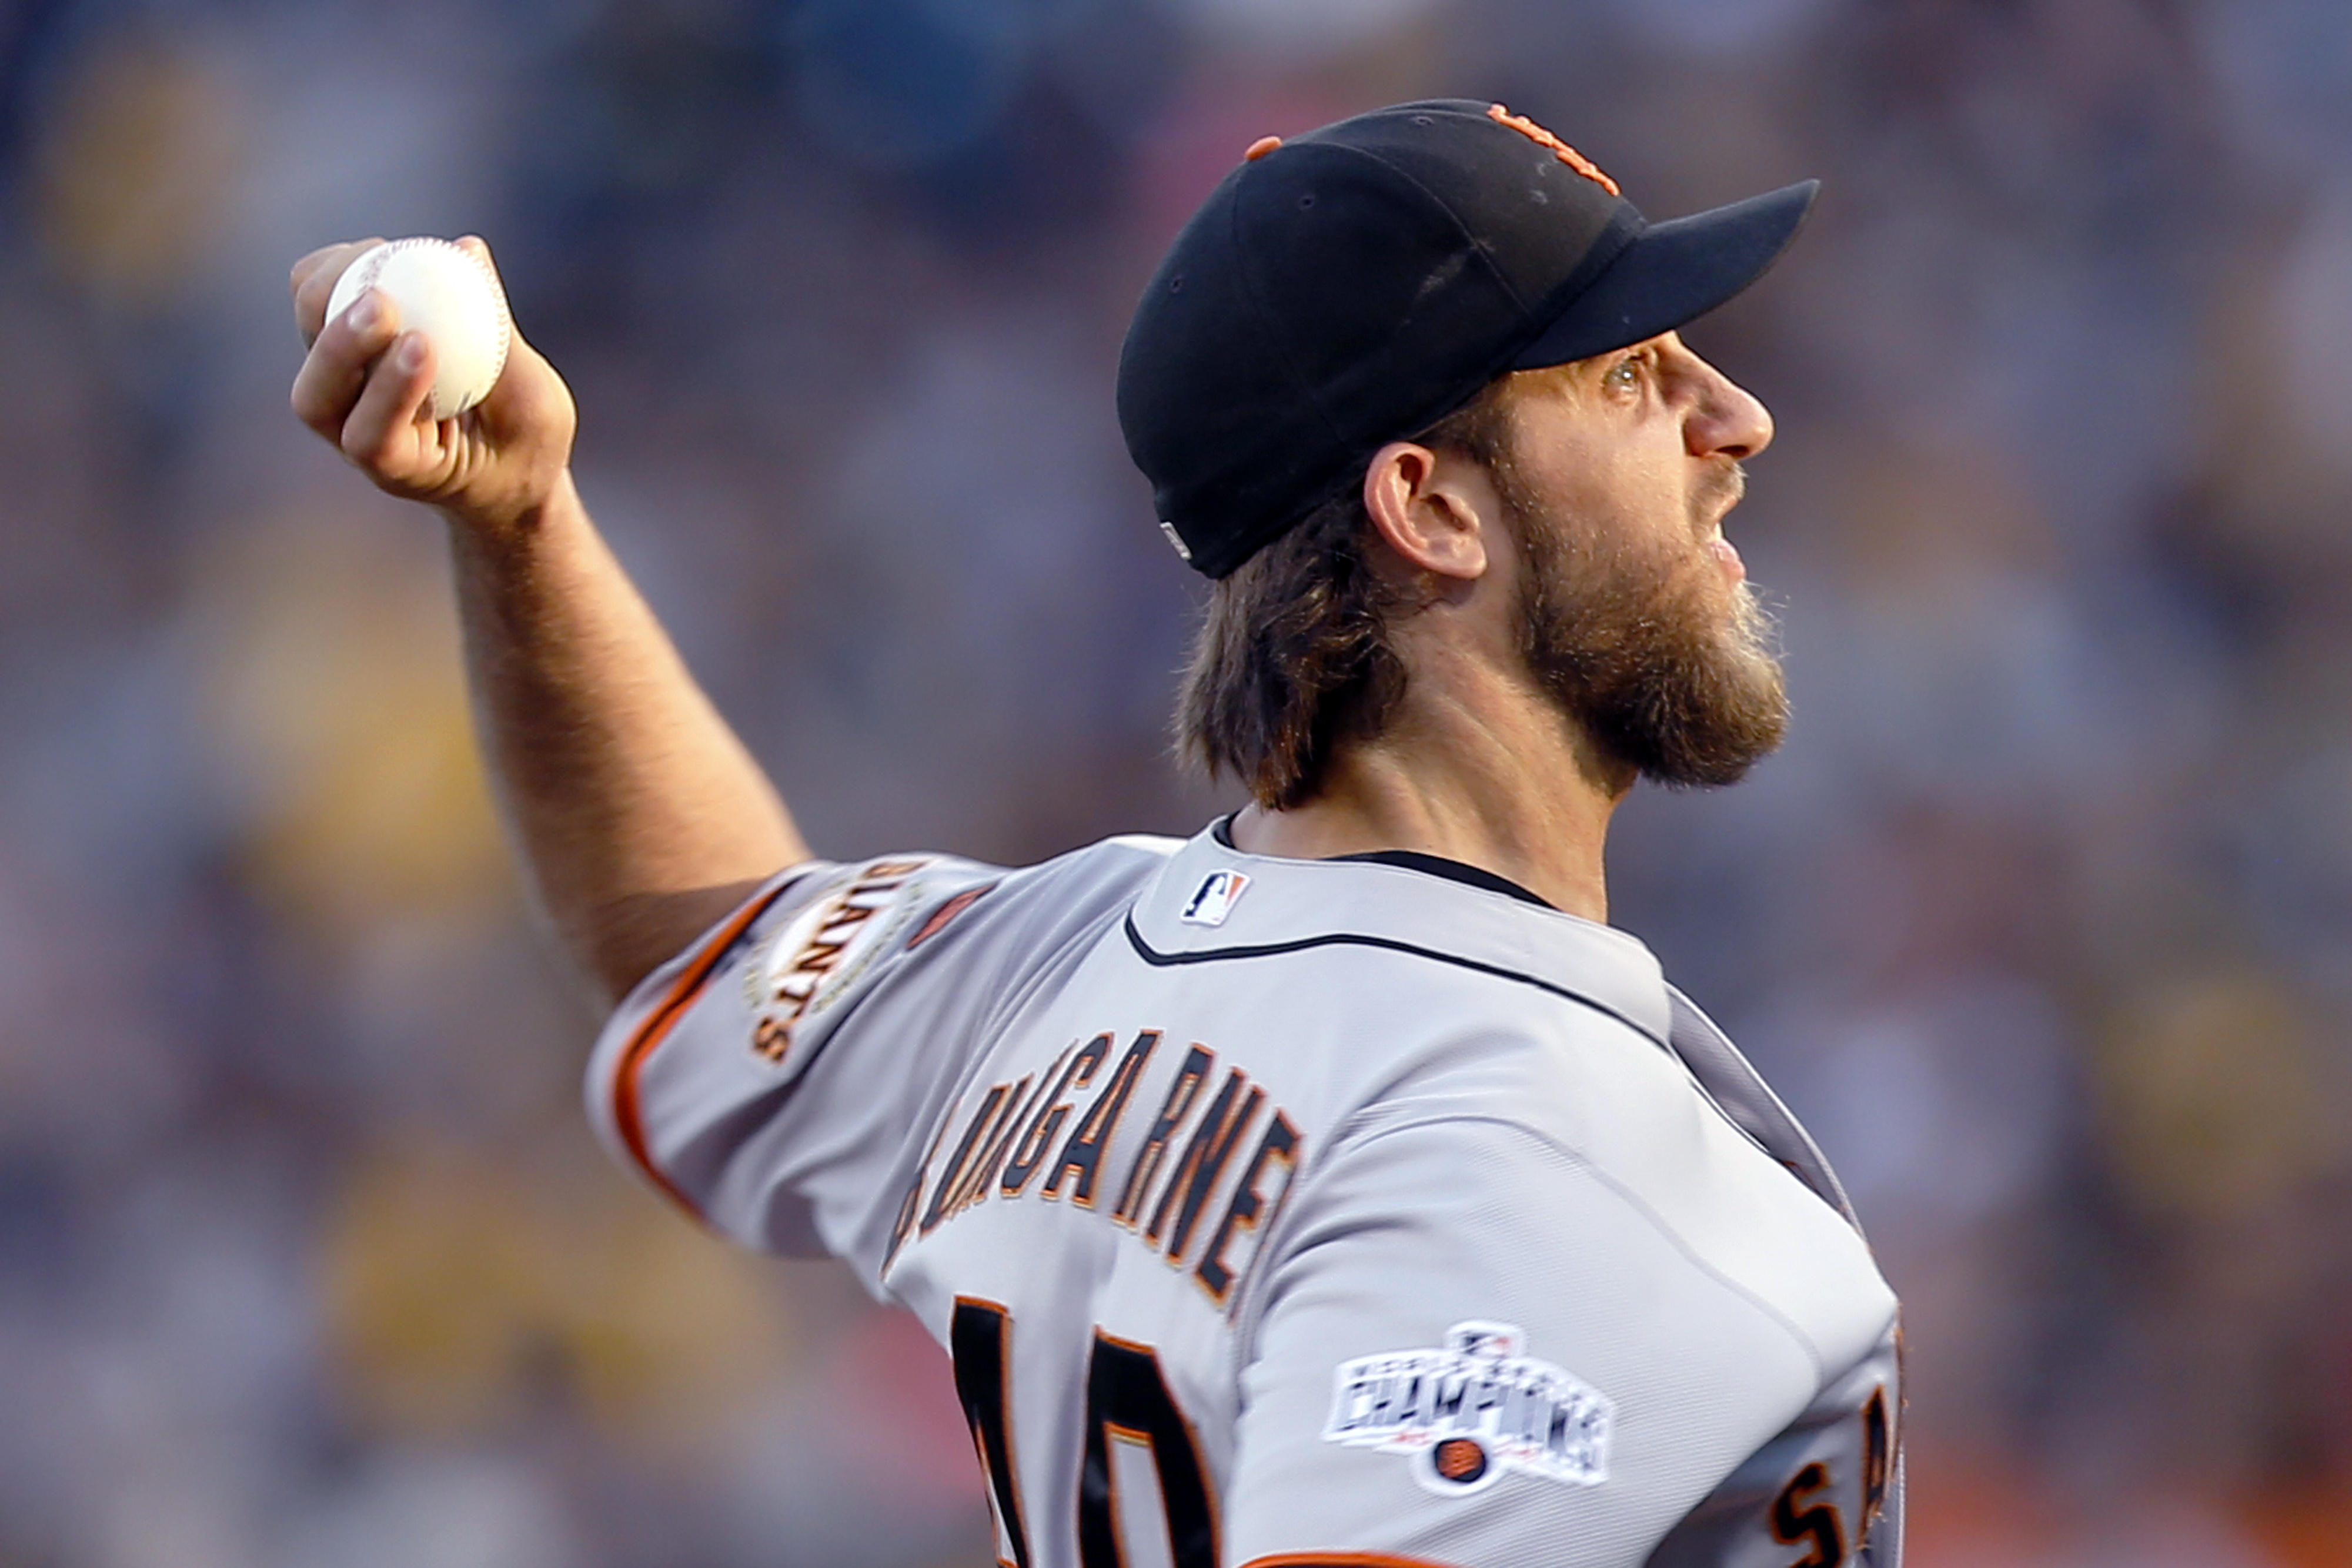 San Francisco Giants starting pitcher Madison Bumgarner throws against the Pittsburgh Pirates in the first inning of a baseball game, Friday, Aug. 21, 2015, in Pittsburgh. (AP Photo/Keith Srakocic)